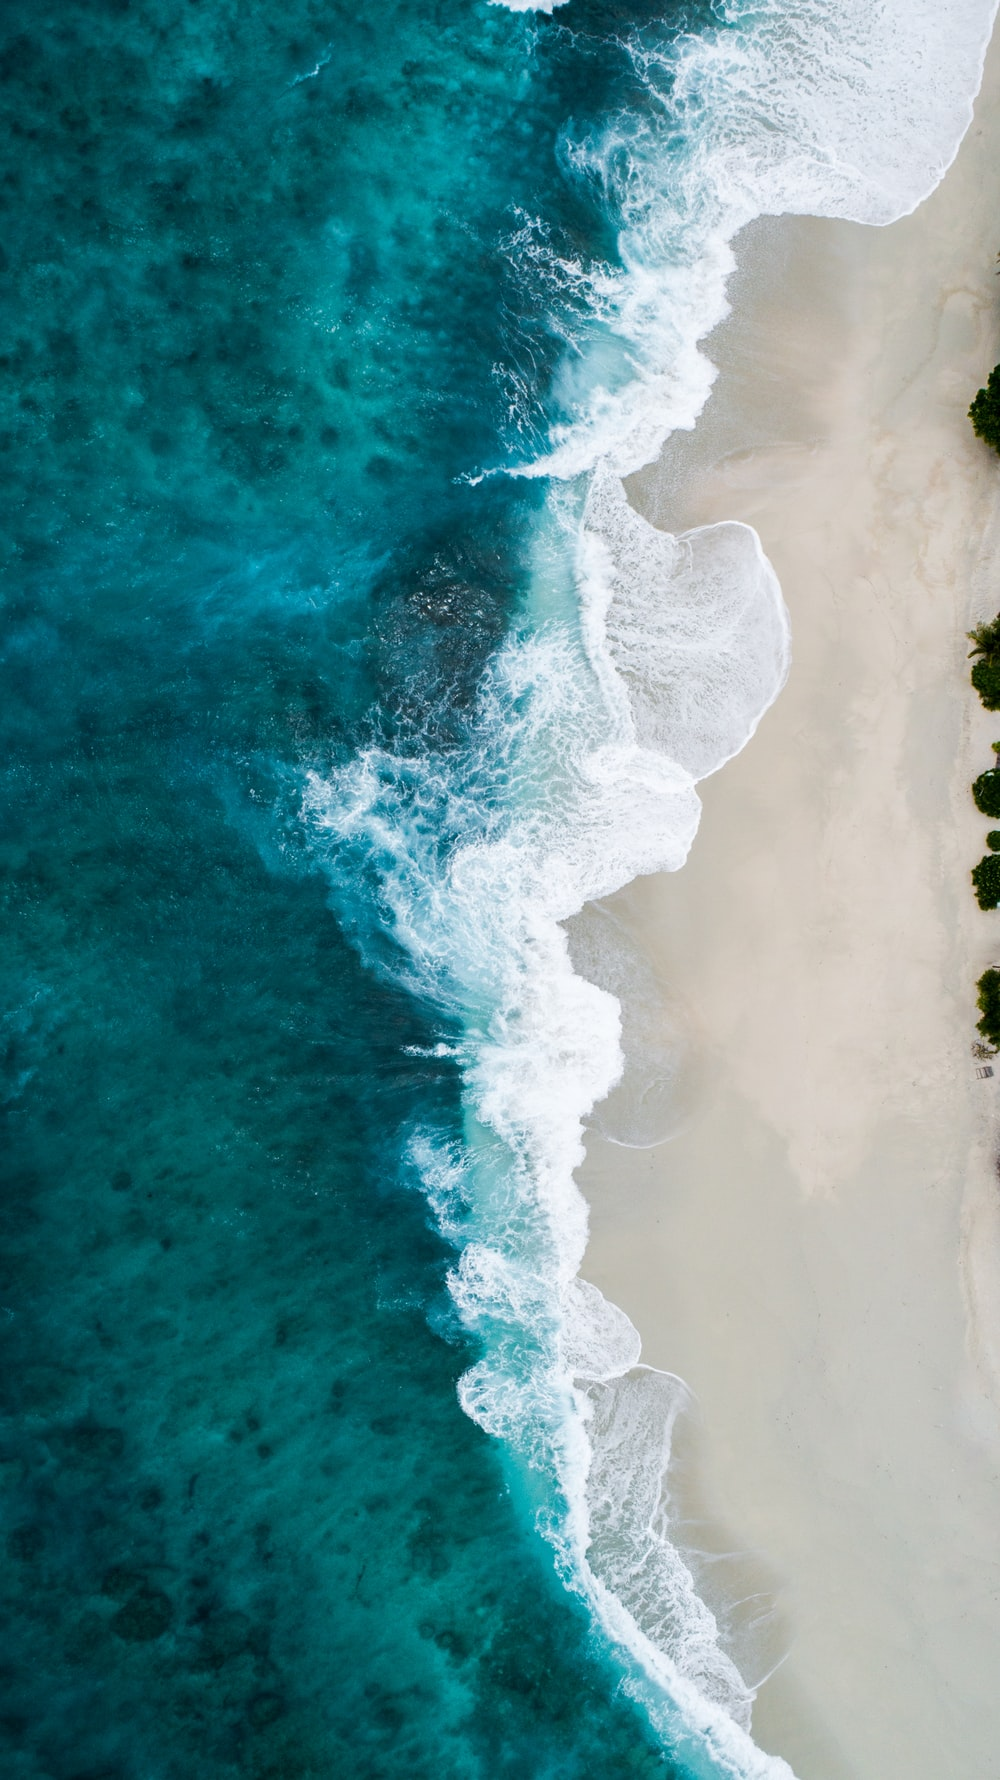 aerial photography of large body of water and shoreline